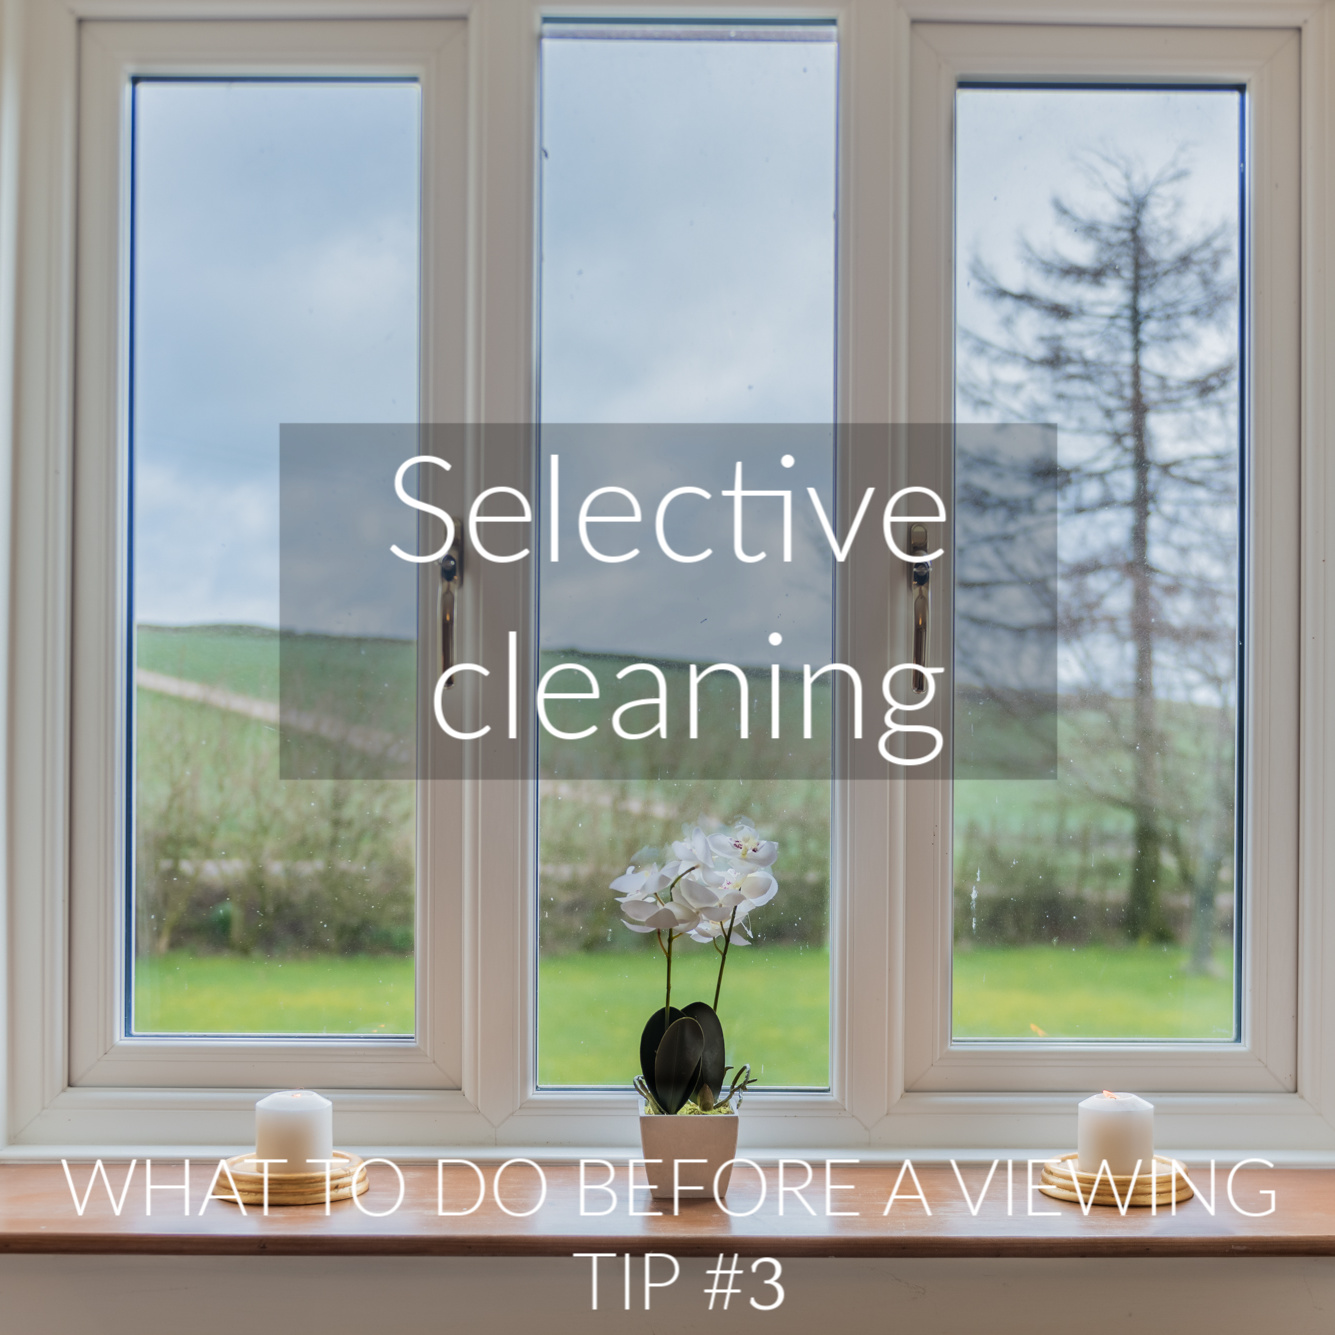 tg3-selective-cleaning